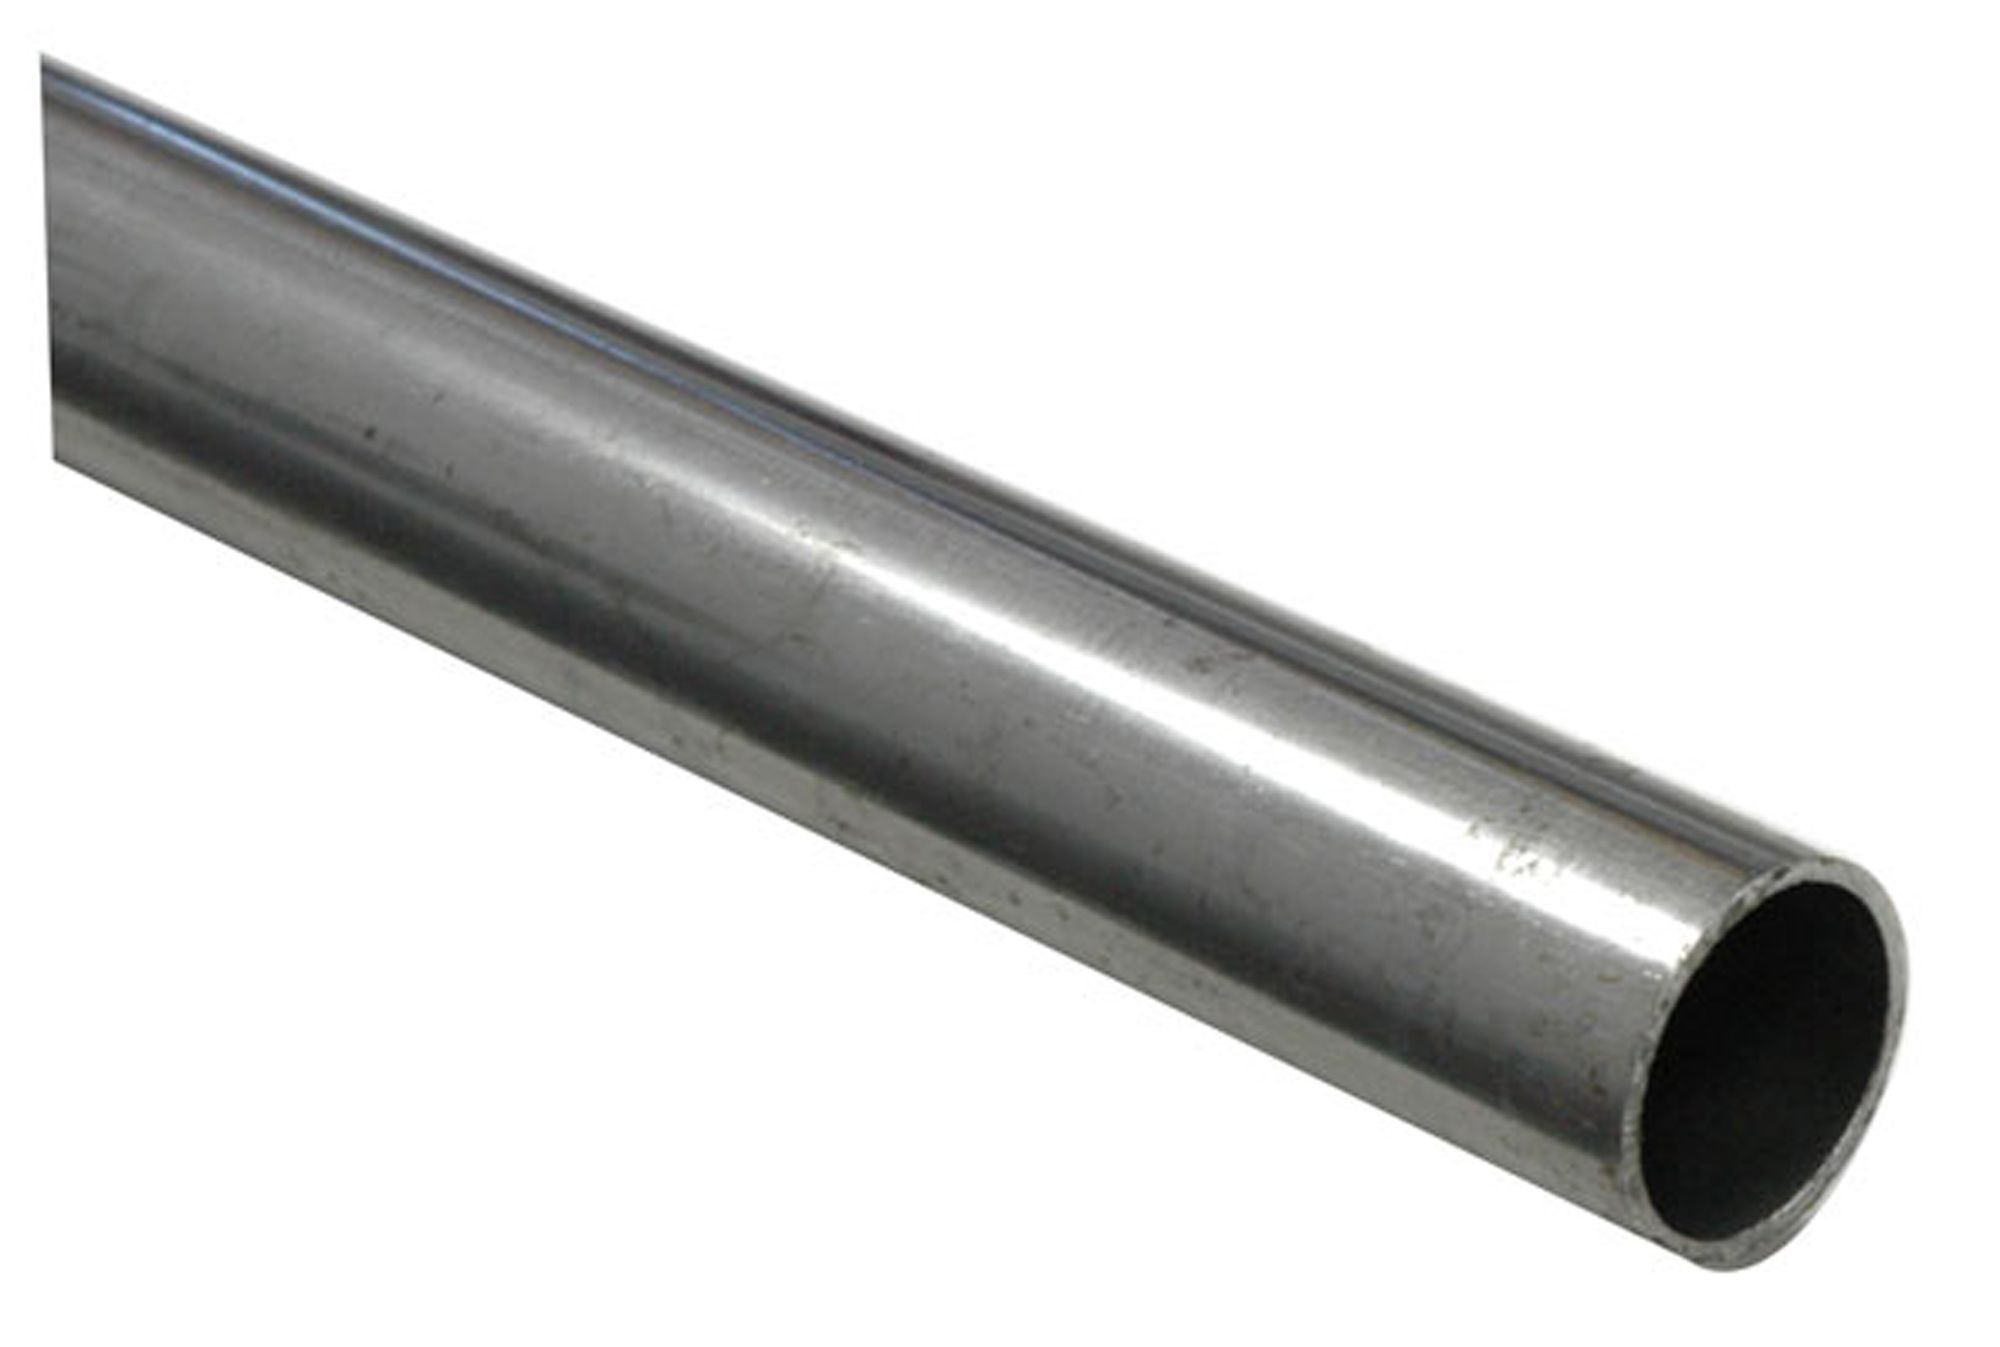 Ffa Concept Steel Round Tube W 10mm L 1m Departments